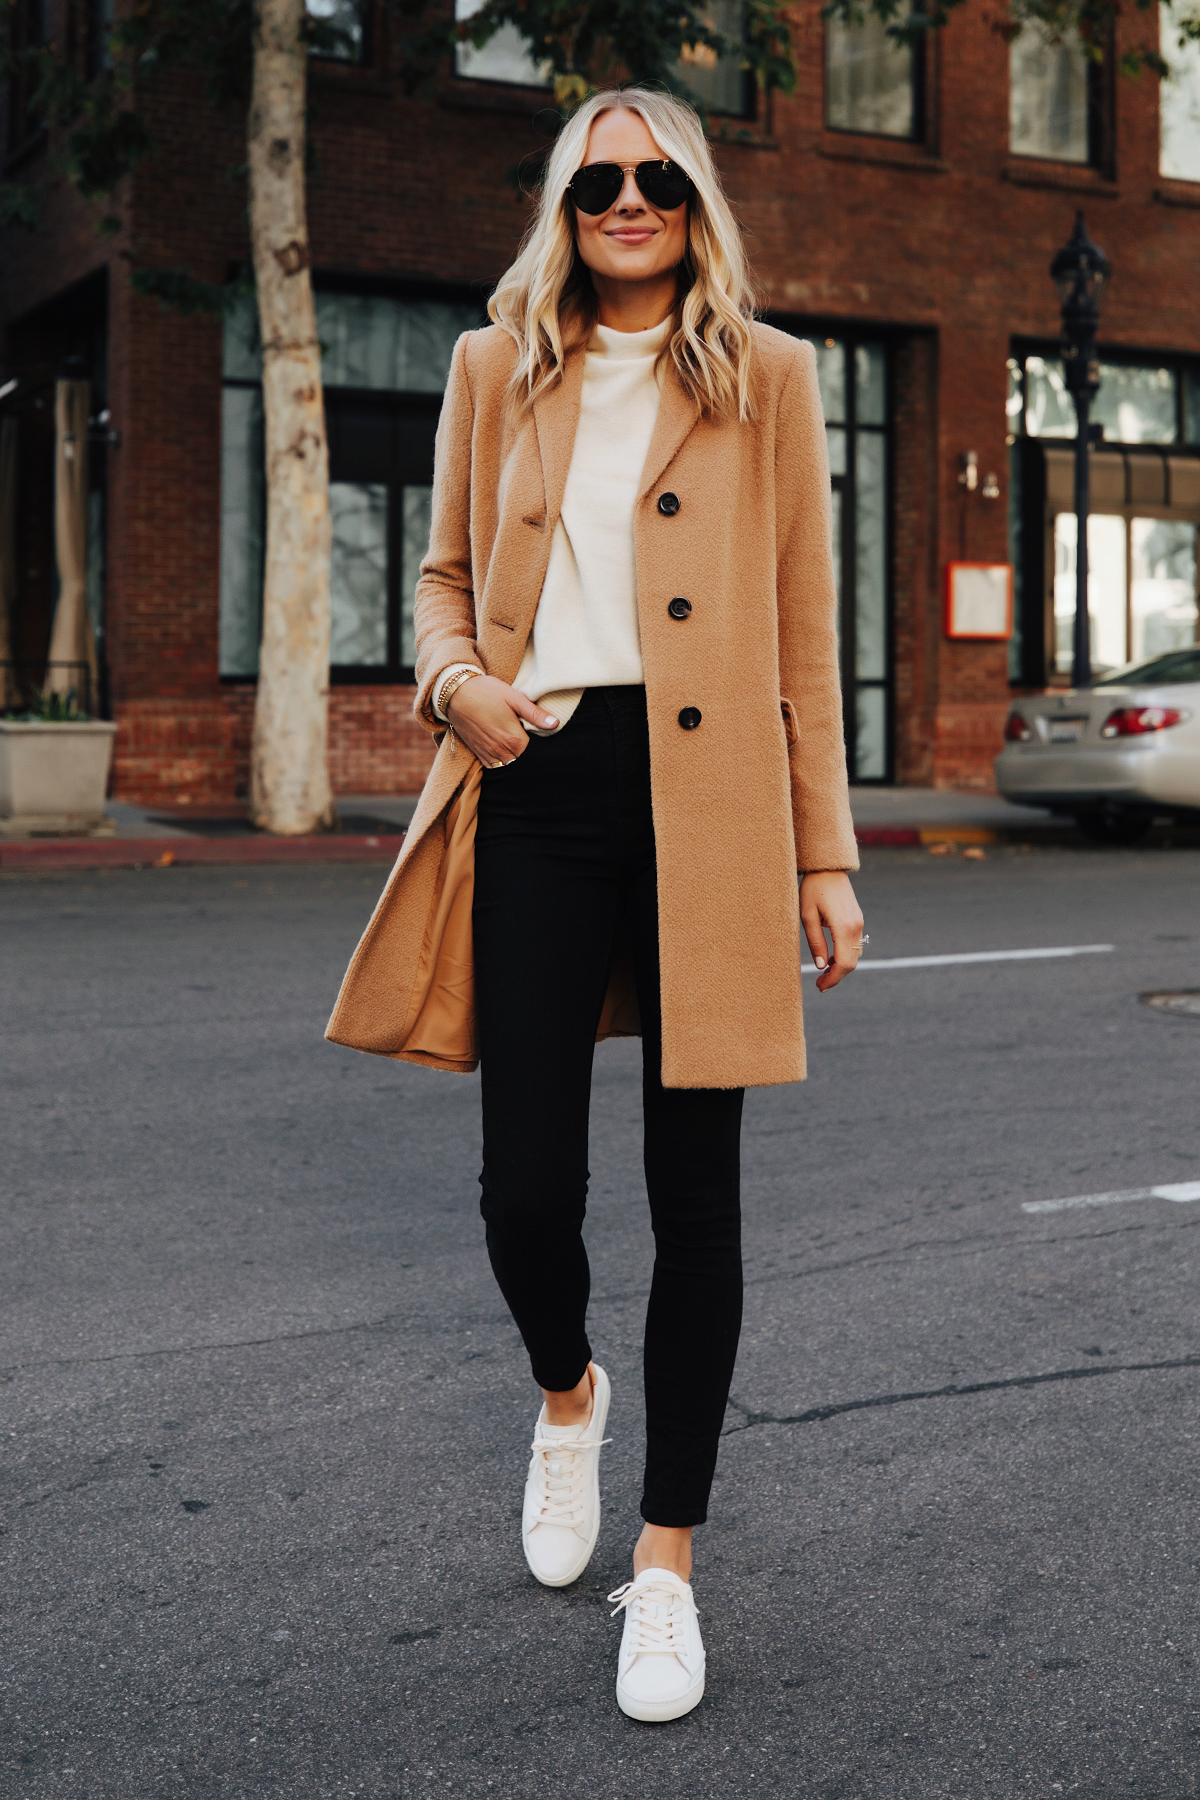 Fashion Jackson Wearing Ann Taylor Camel Coat White Sweater Black Skinny Jeans White Sneakers 1